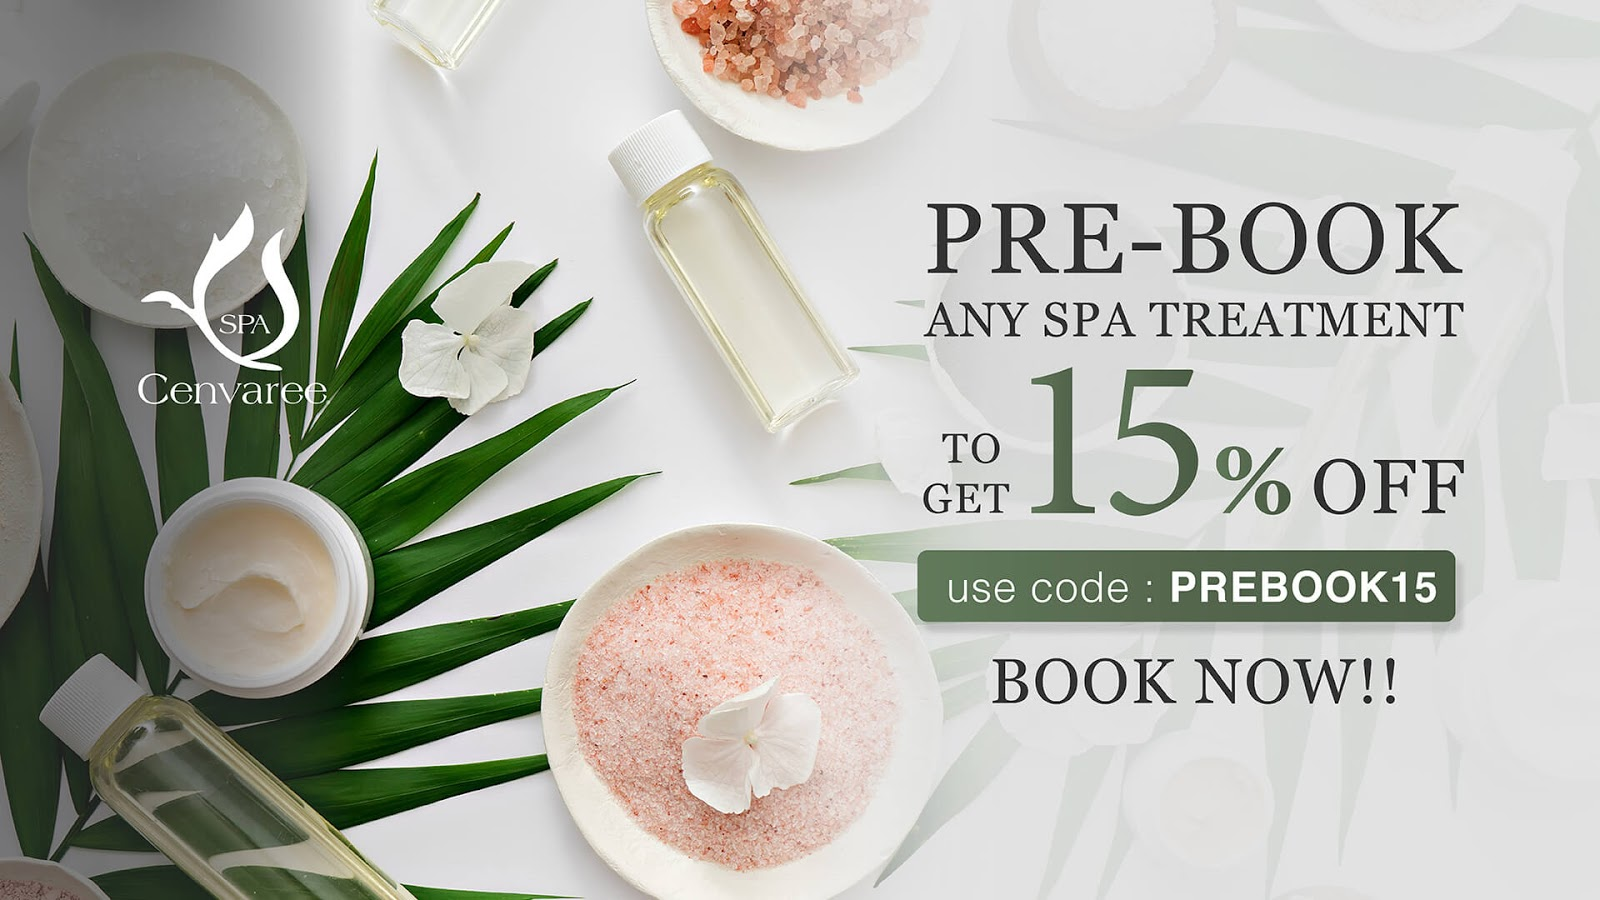 Hotelier Indonesia Spa and Wellness : SPA Cenvaree Spa Best Deals